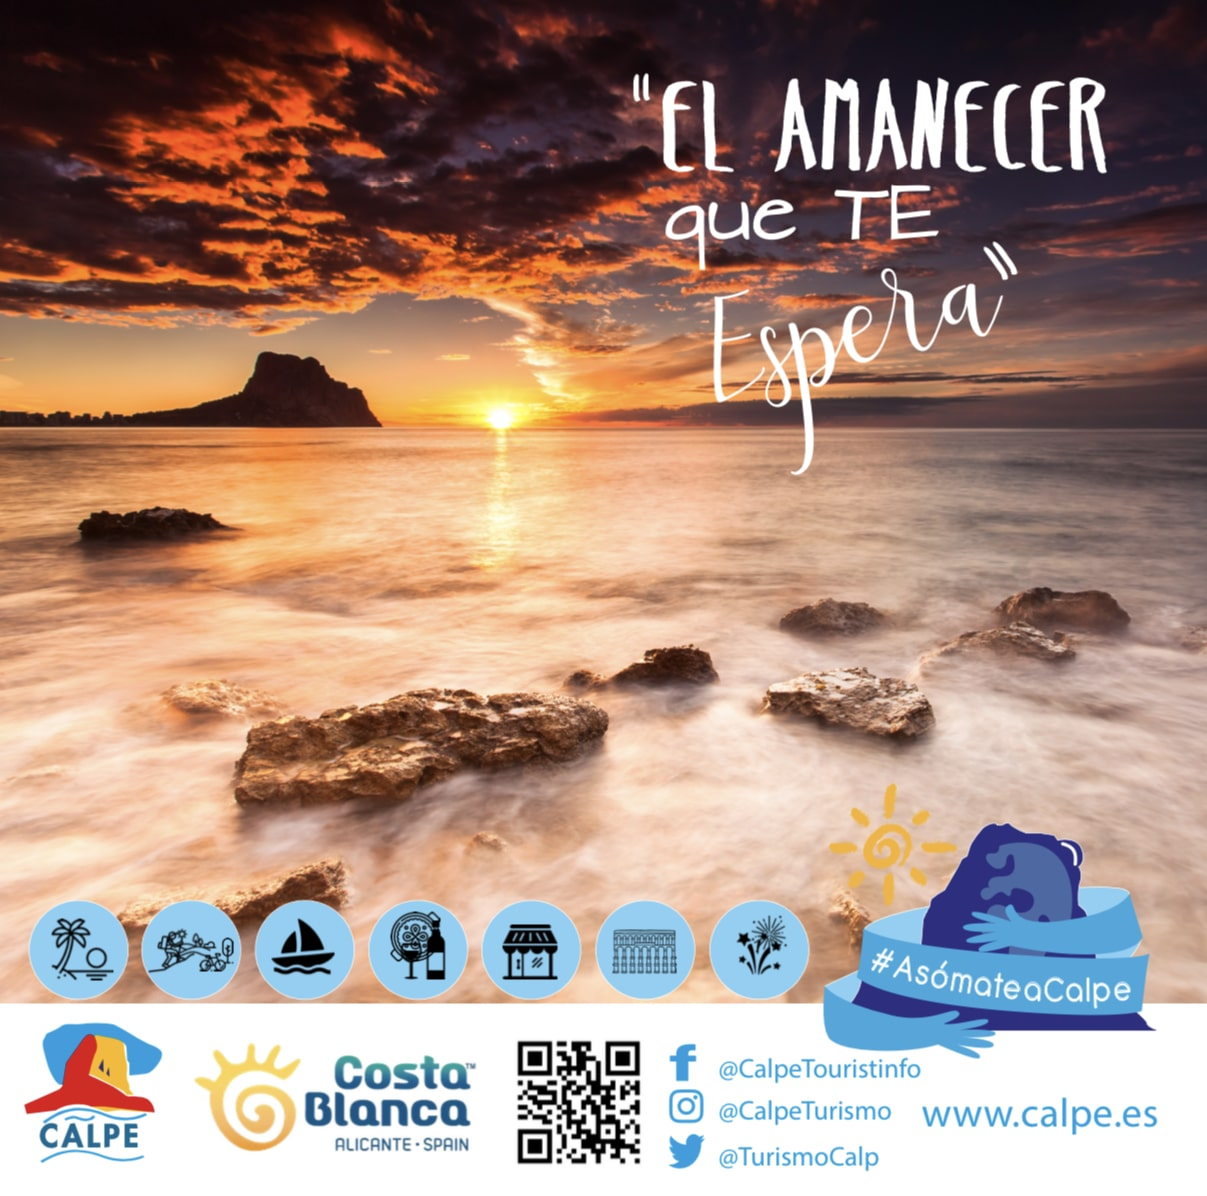 The City Council is launching a campaign in social network to attract tourism and asks the citizens of Calp to act as Influencers